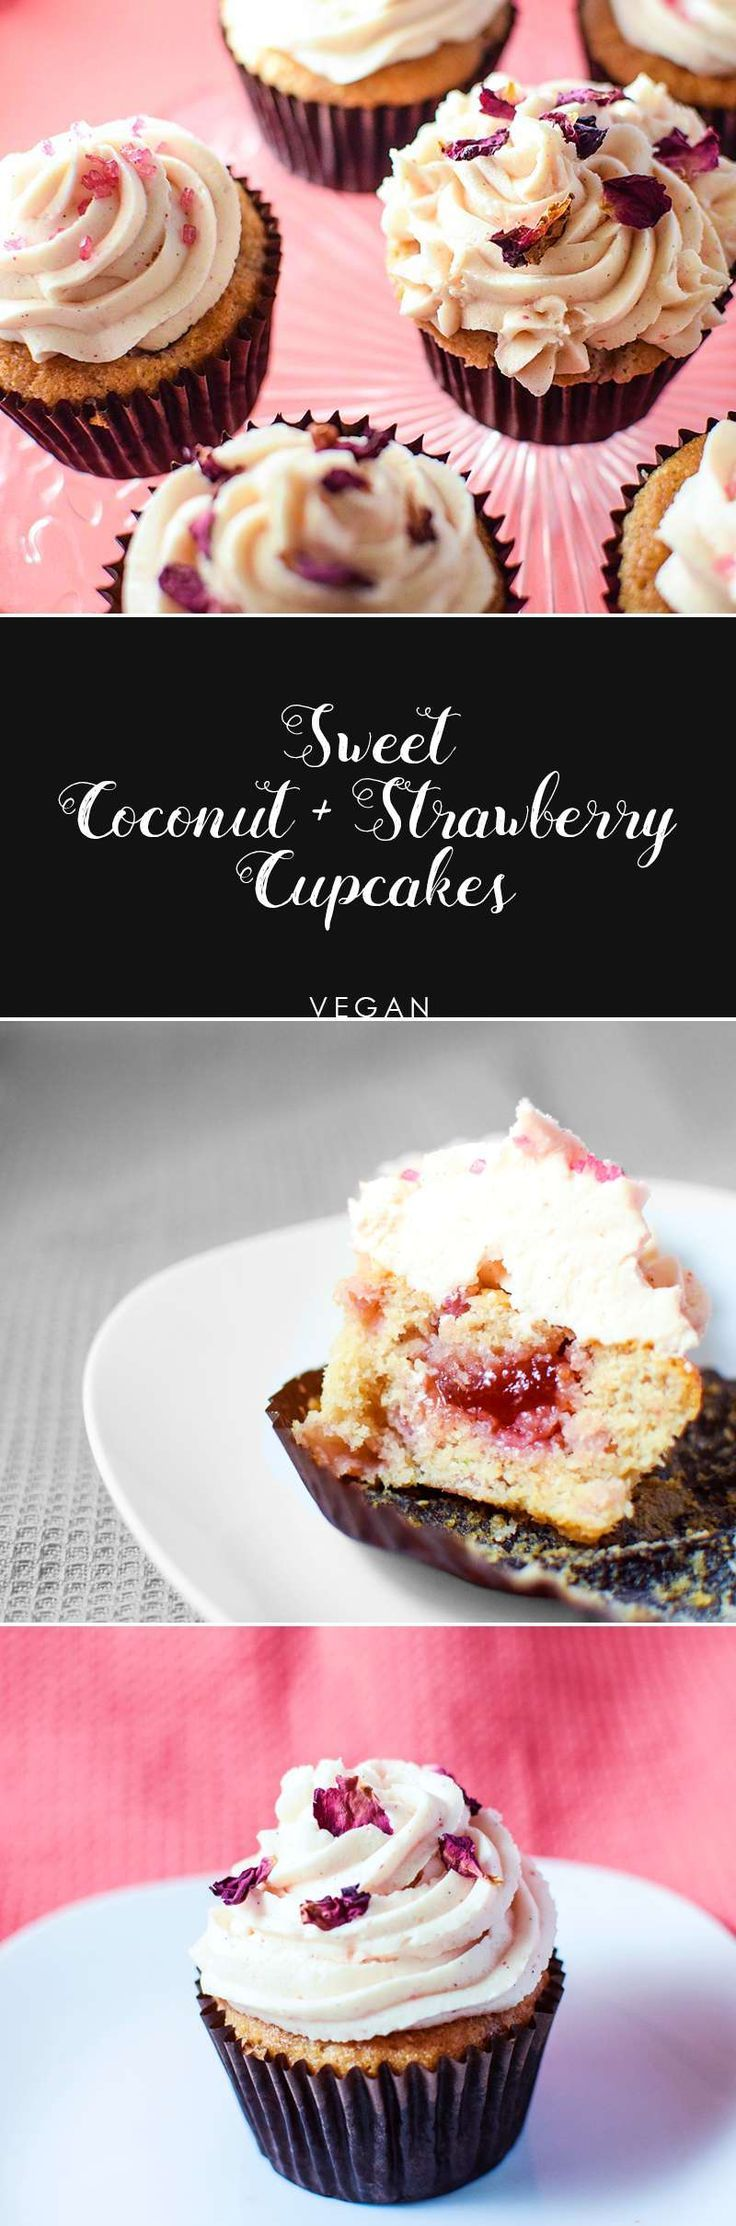 Delectably sweet, coconut and strawberry cupcakes - perfect for birthday parties, shower and just a it of vegan baking!